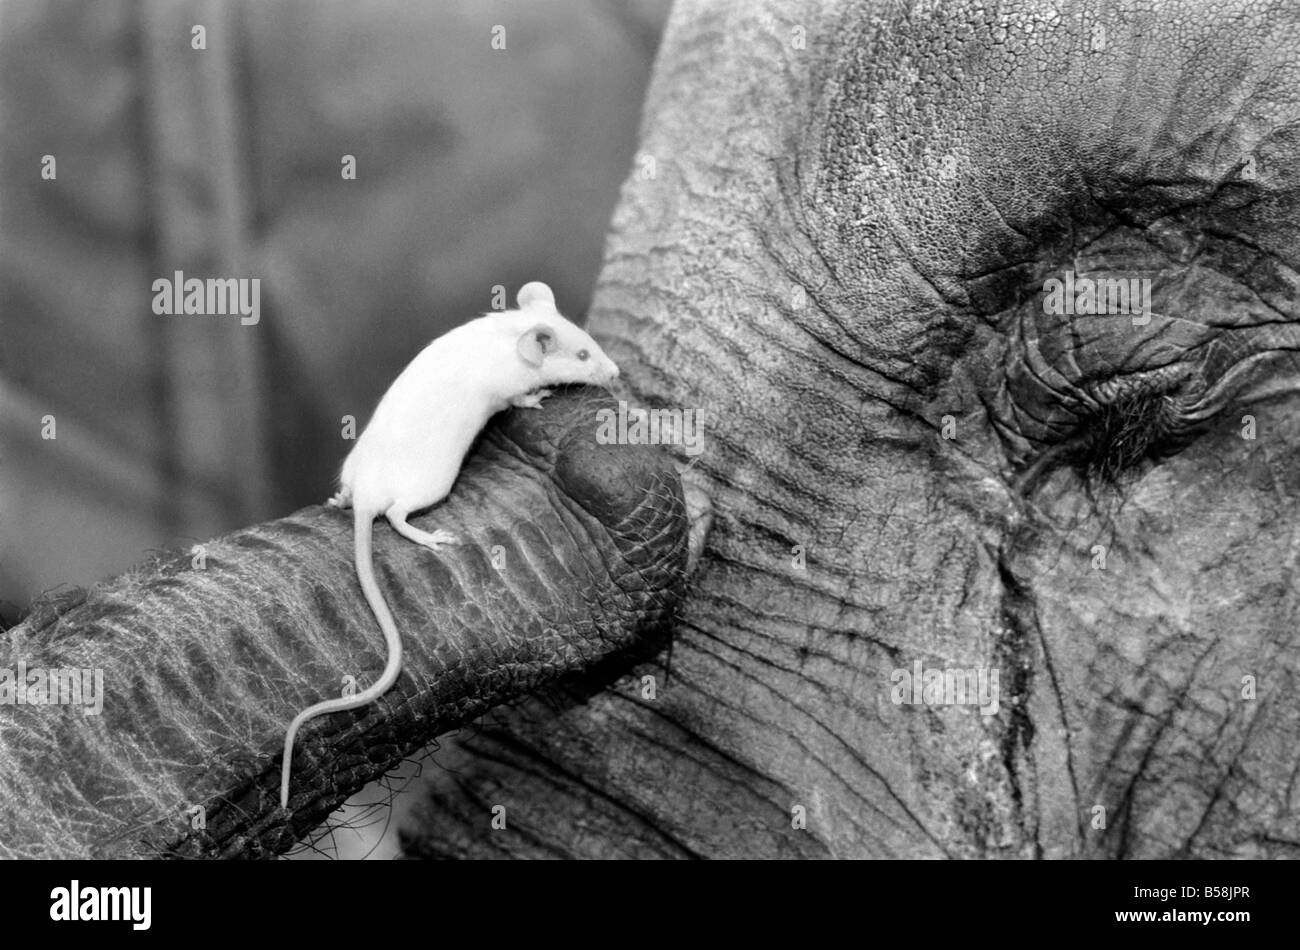 Elephant and Mouse: Mighty Mary seems quite at home in Ranee's trunk. March 1975 75-01199-001 - Stock Image